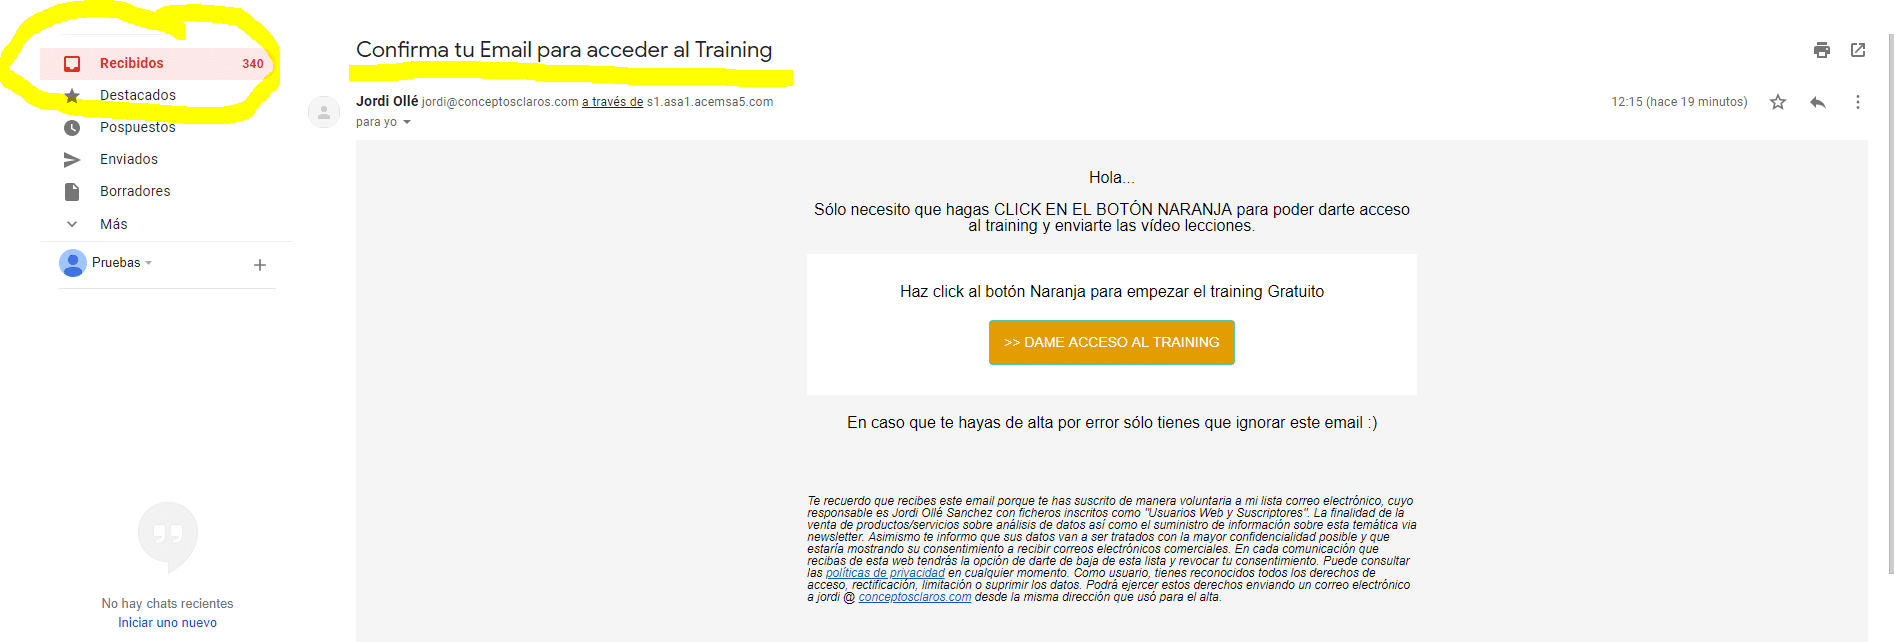 confirma-email-training